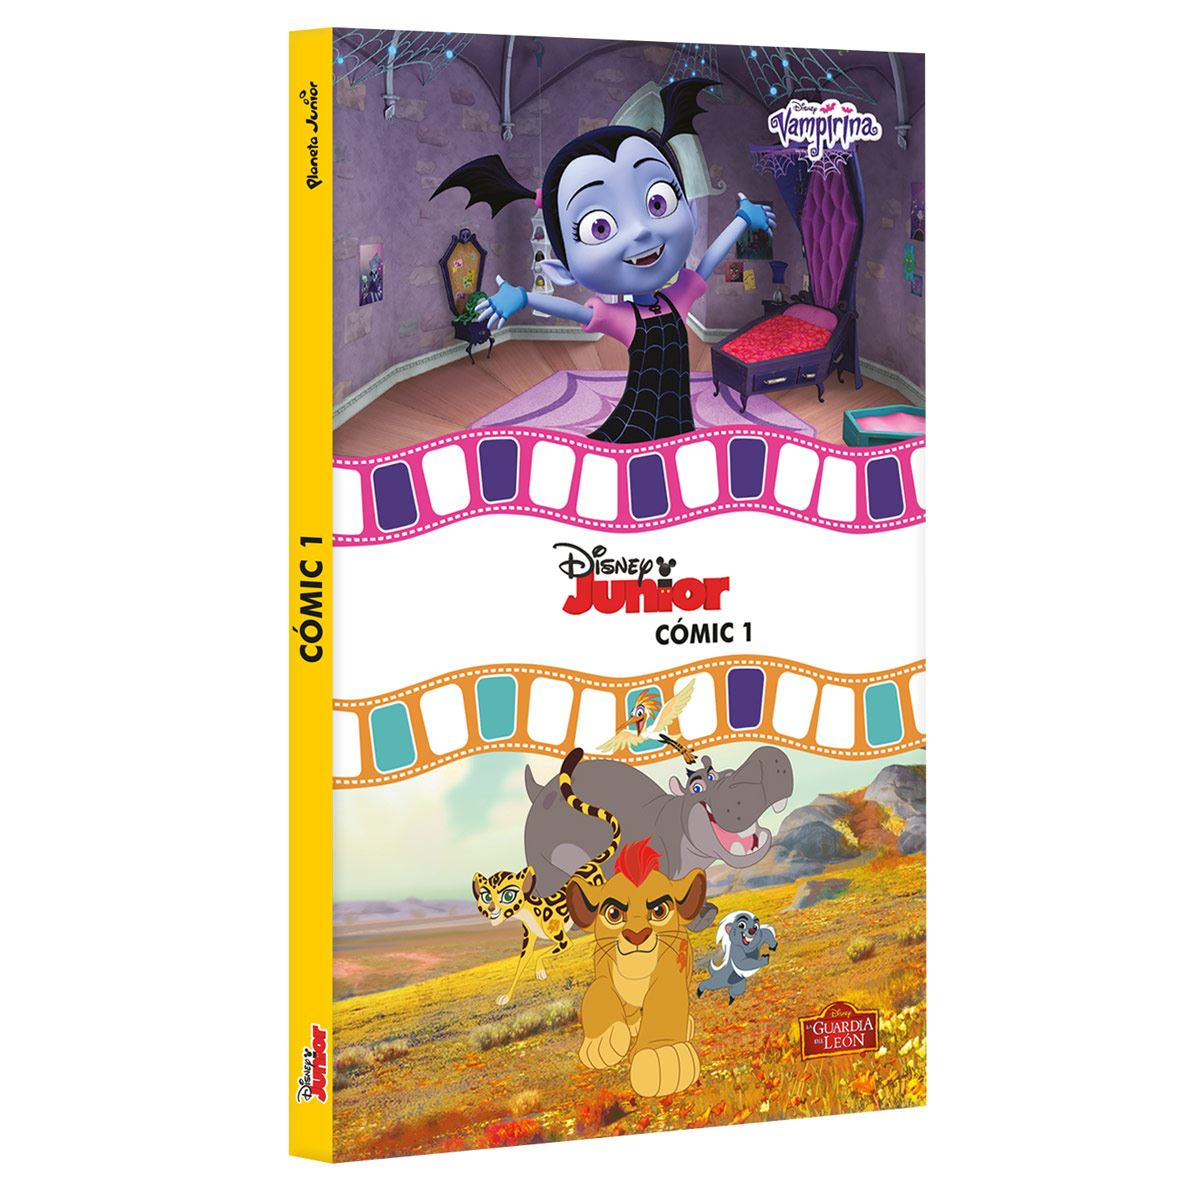 Disney Junior. Cómic 1